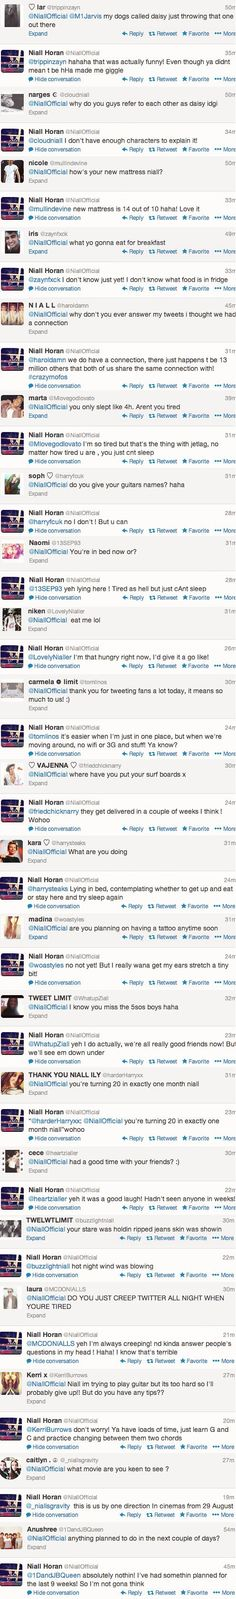 niall jetlag tweets 1/2 (this is amazing!!!) - He's so sweet to the fans!